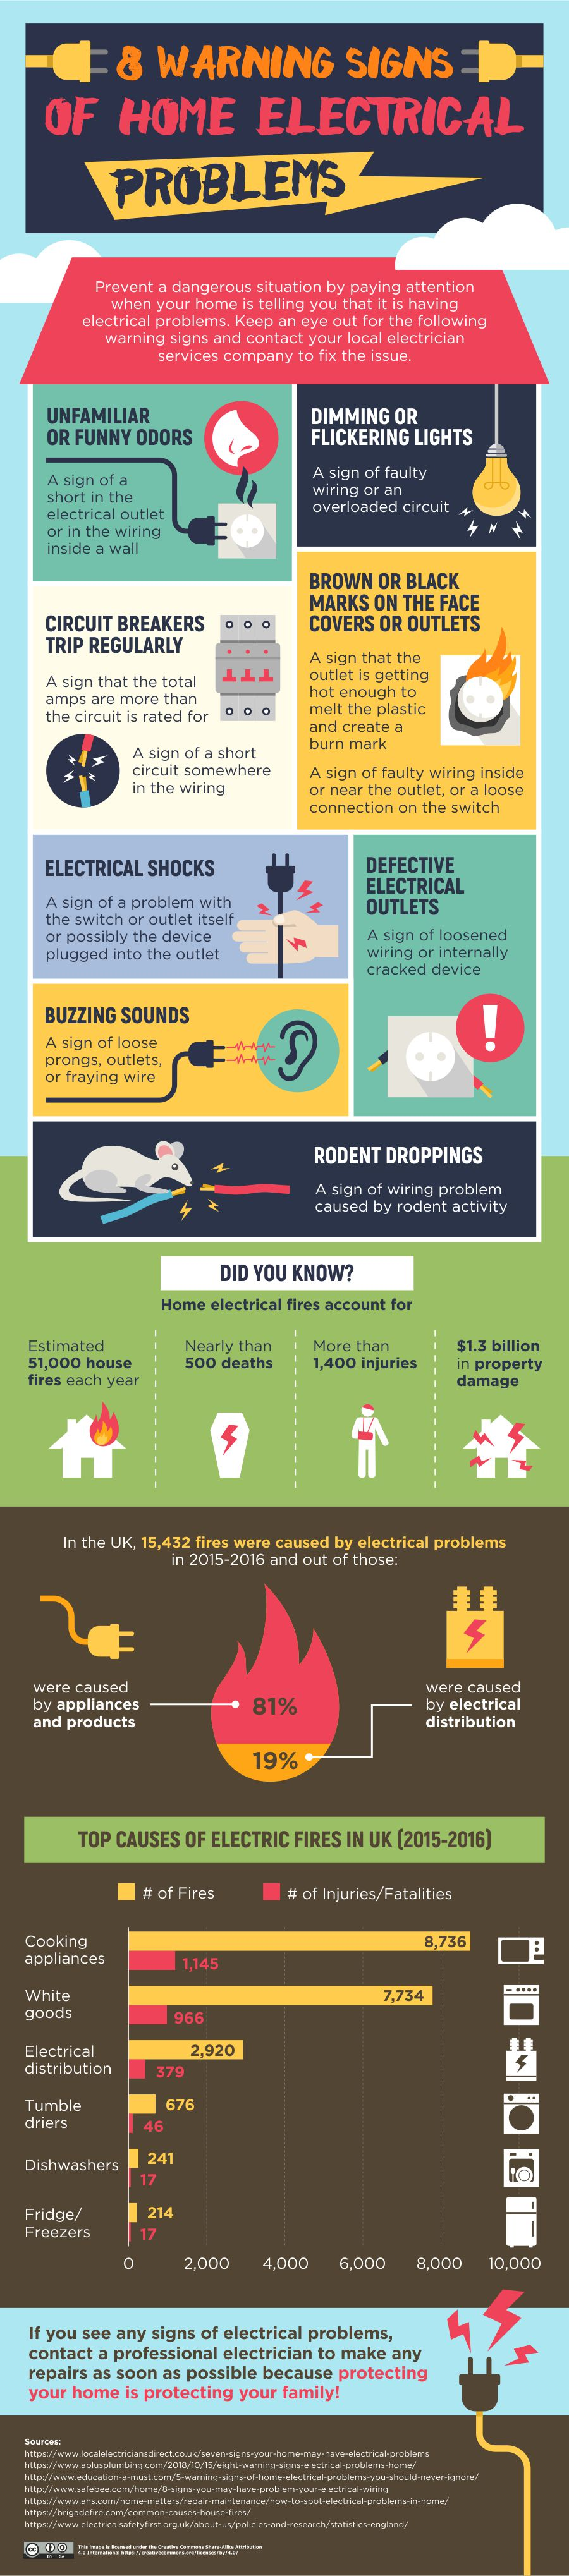 8 Warning Signs of Electrical Problems